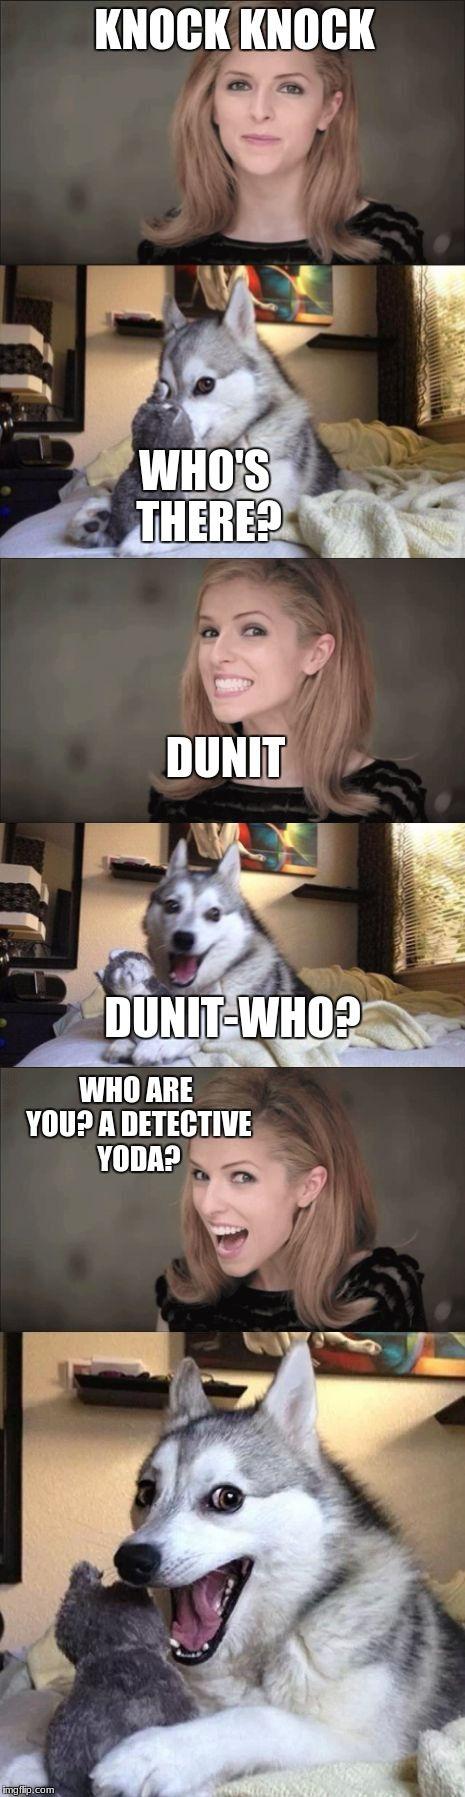 Anna and Bad Pun Dog Work Together | KNOCK KNOCK WHO'S THERE? DUNIT DUNIT-WHO? WHO ARE YOU? A DETECTIVE YODA? | image tagged in anna and bad pun dog work together | made w/ Imgflip meme maker